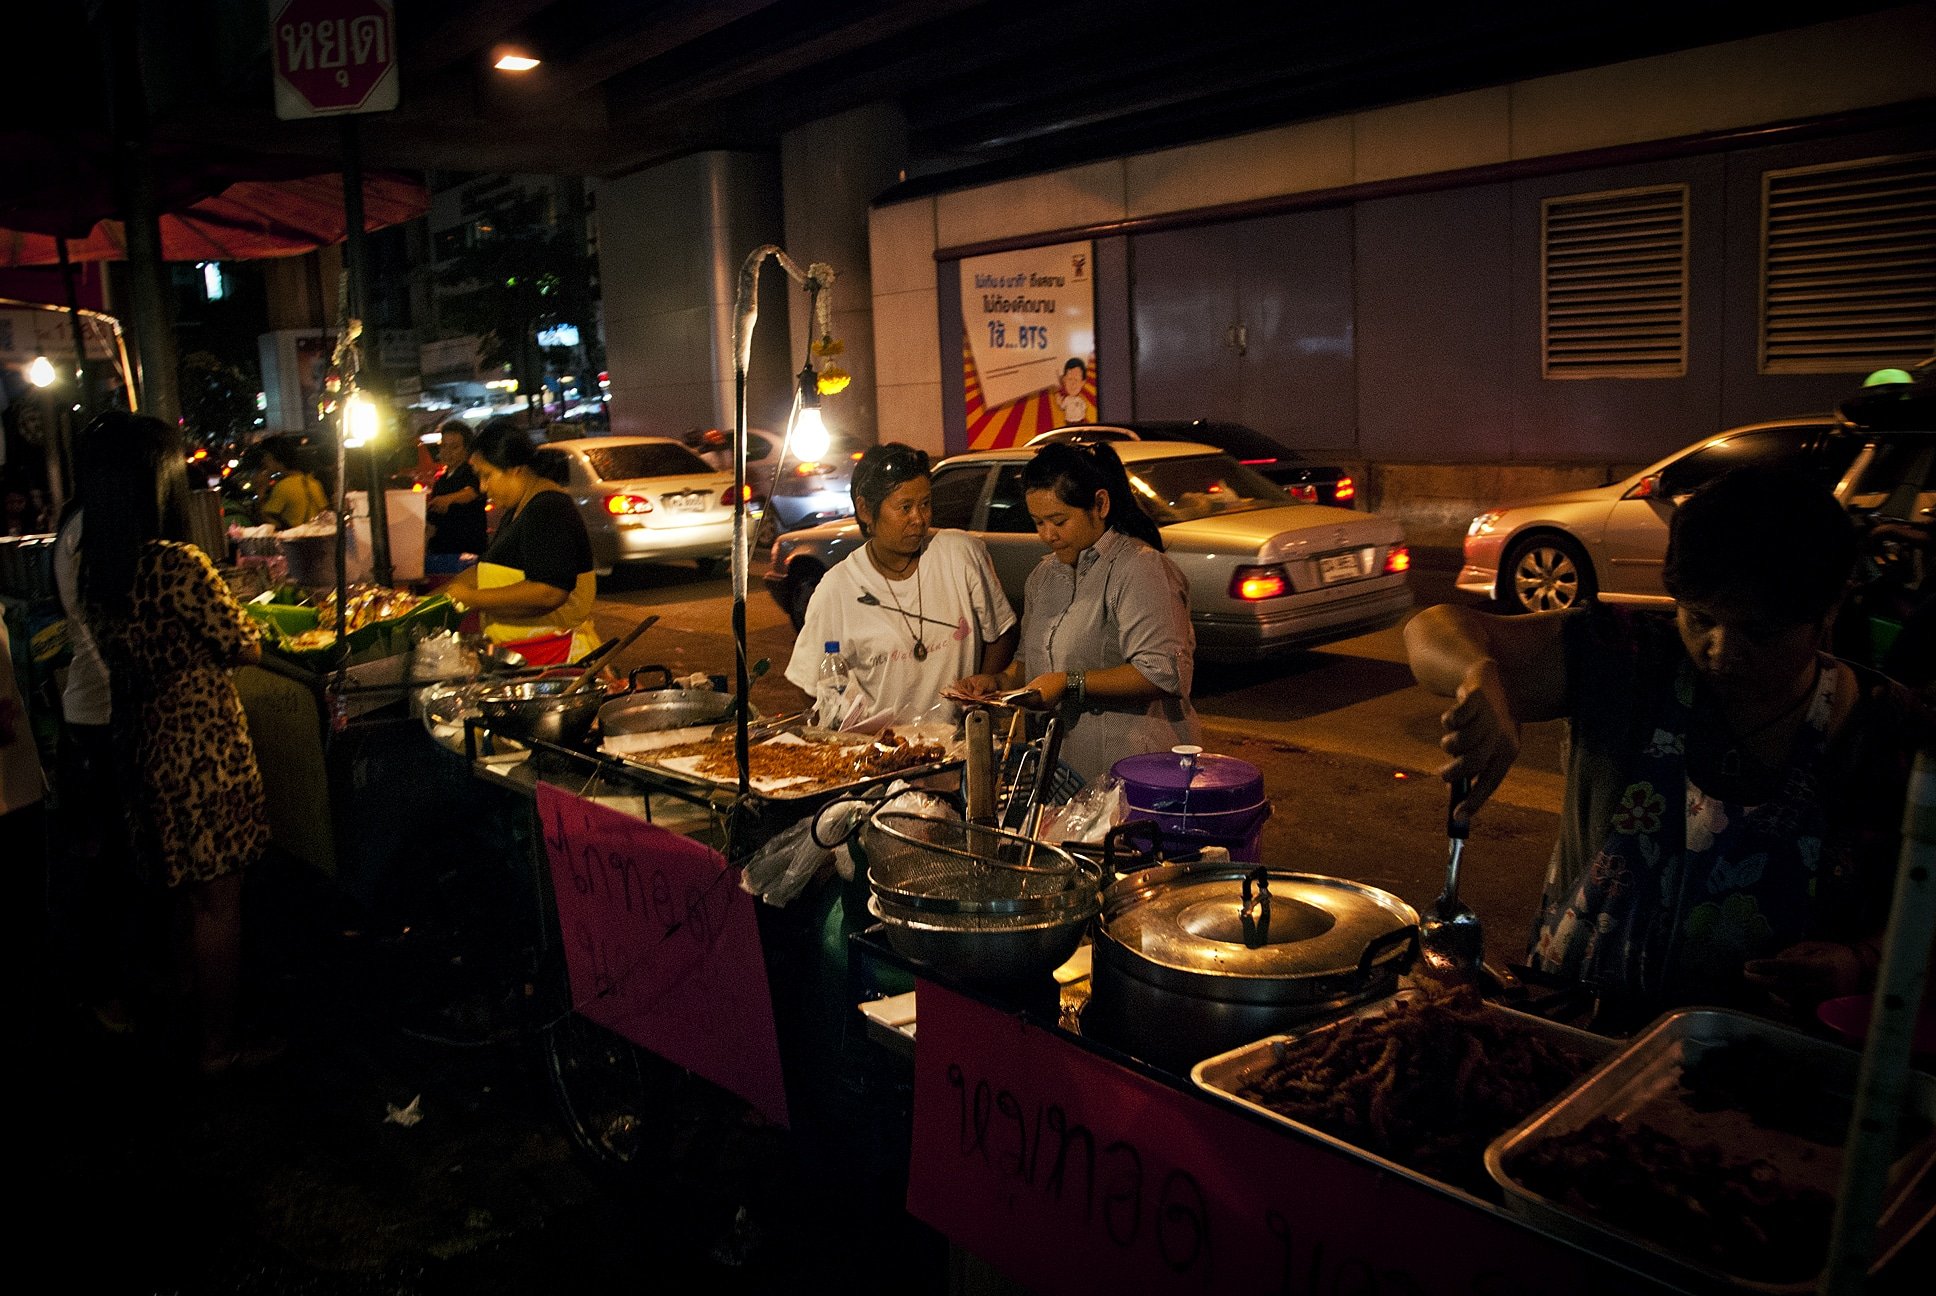 The streets of Bangkok, Thailand at night - Lost With Purpose